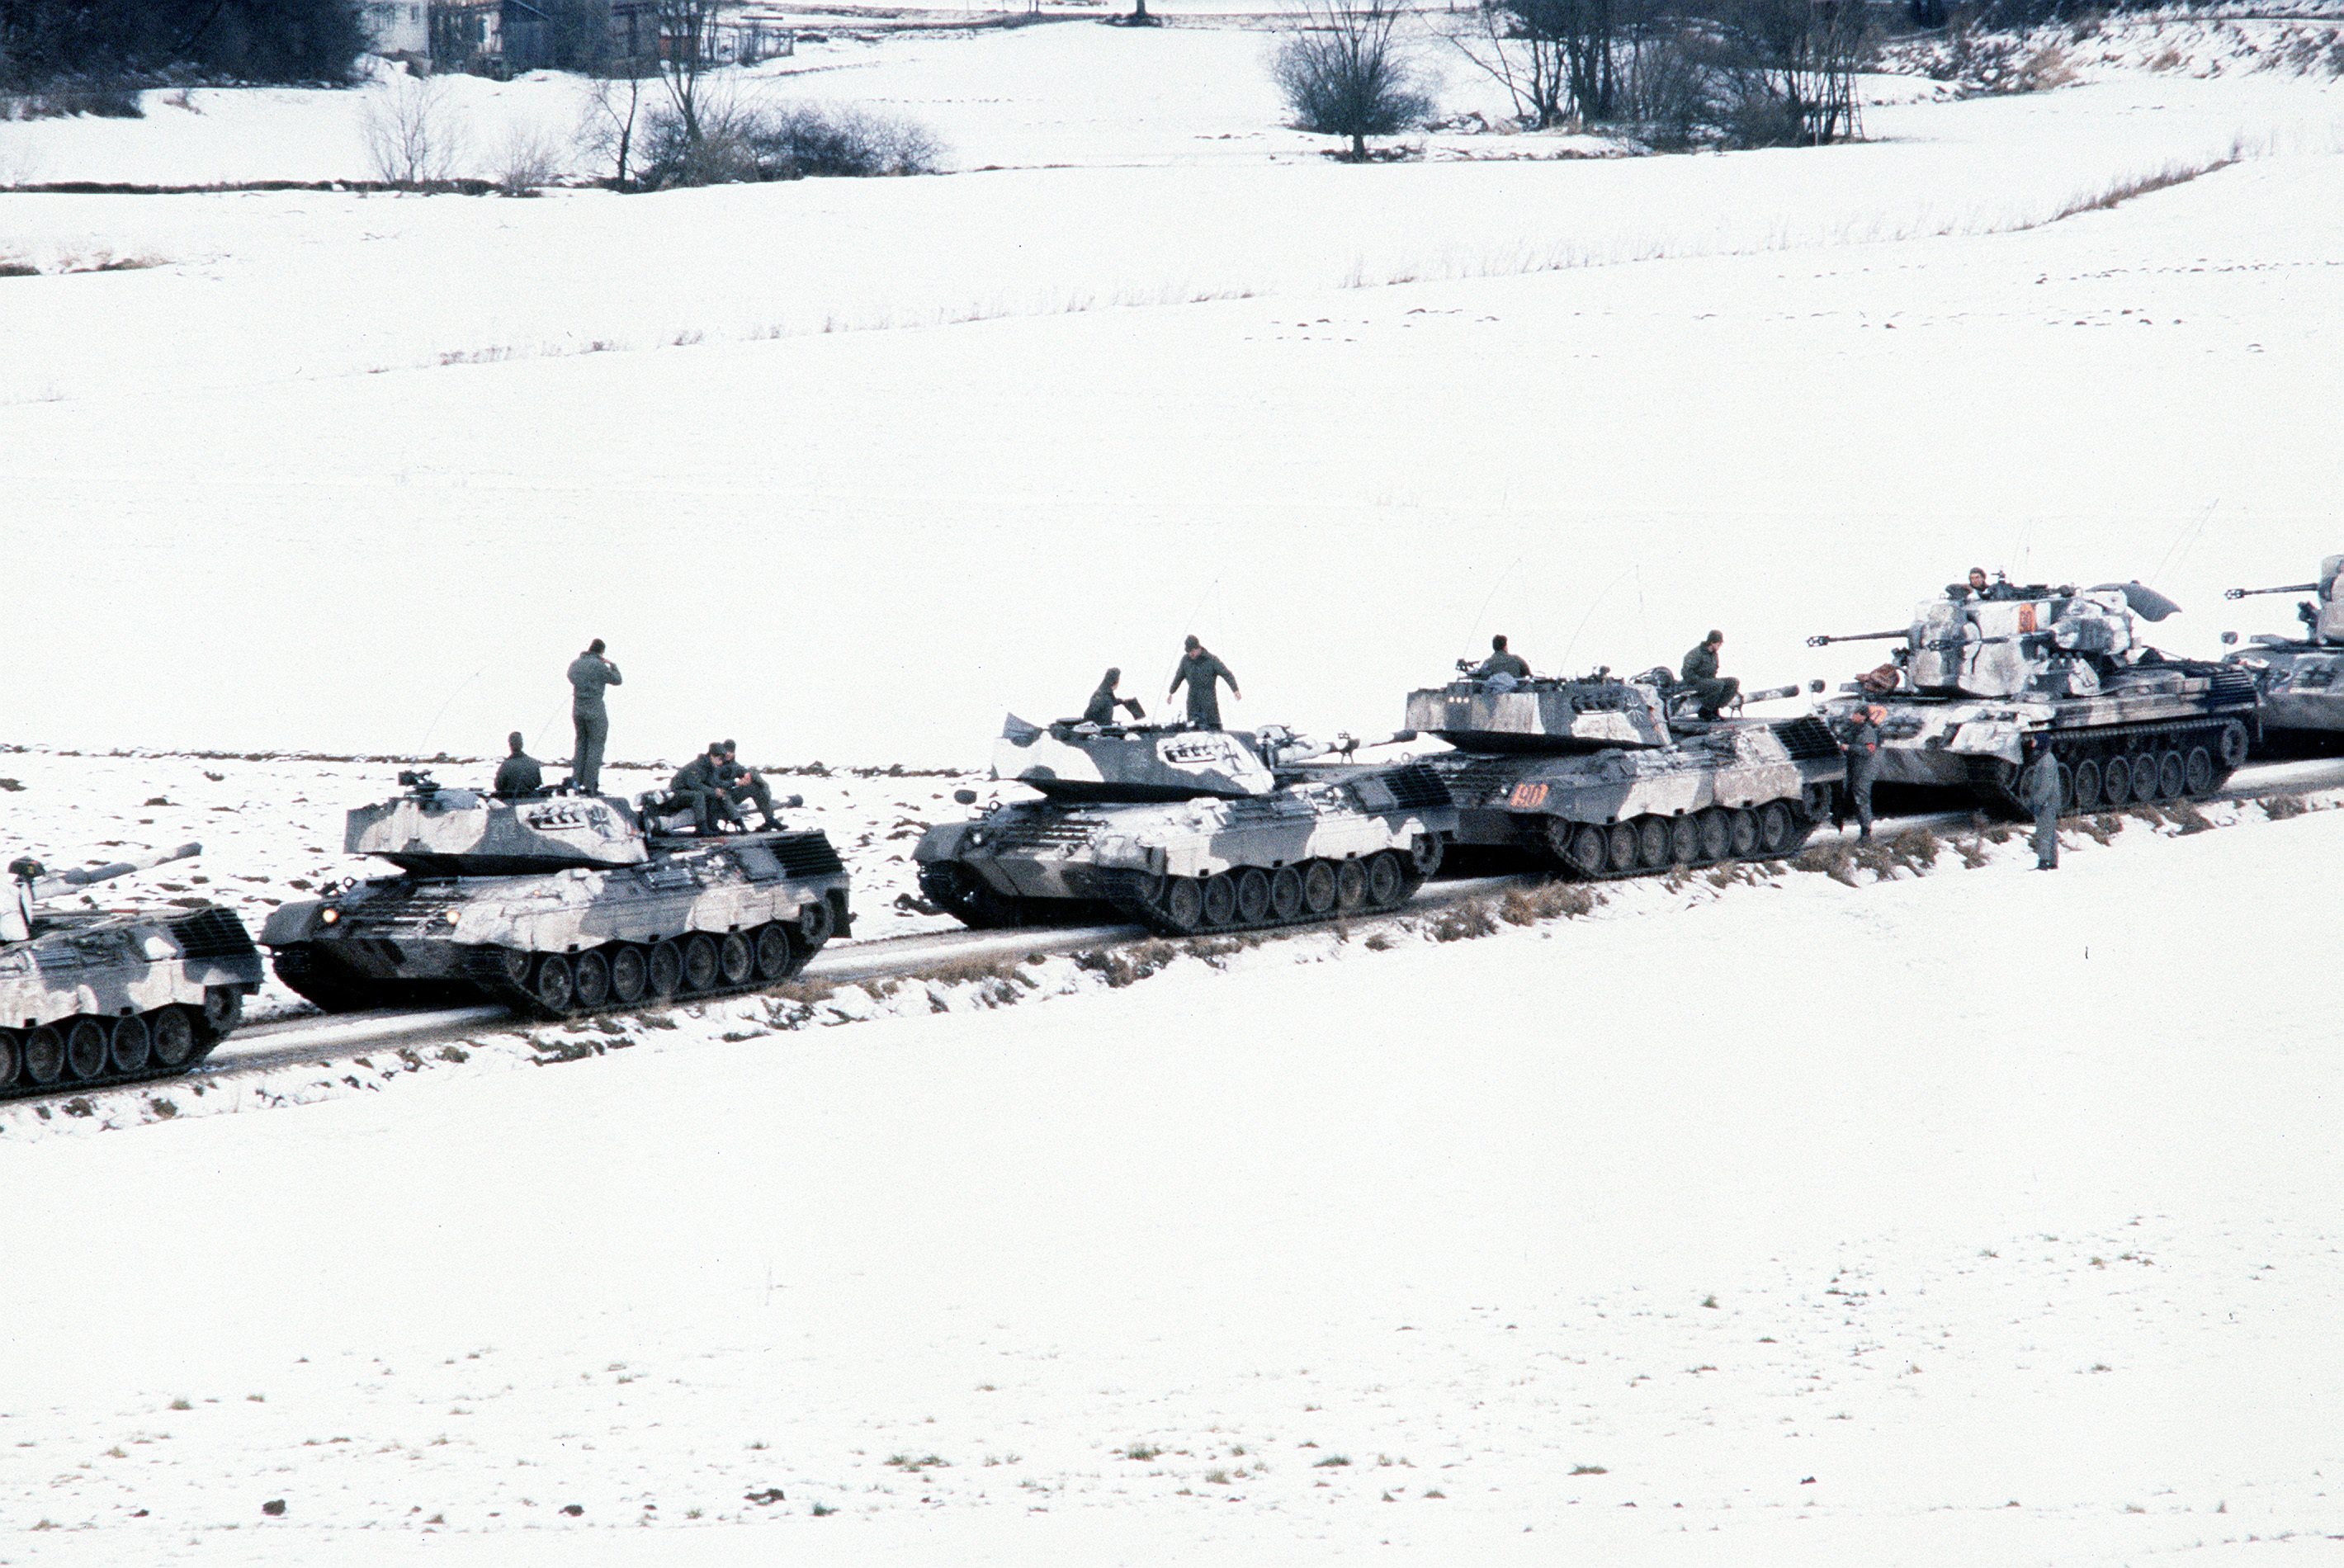 West German leopard tanks HD Wallpaper